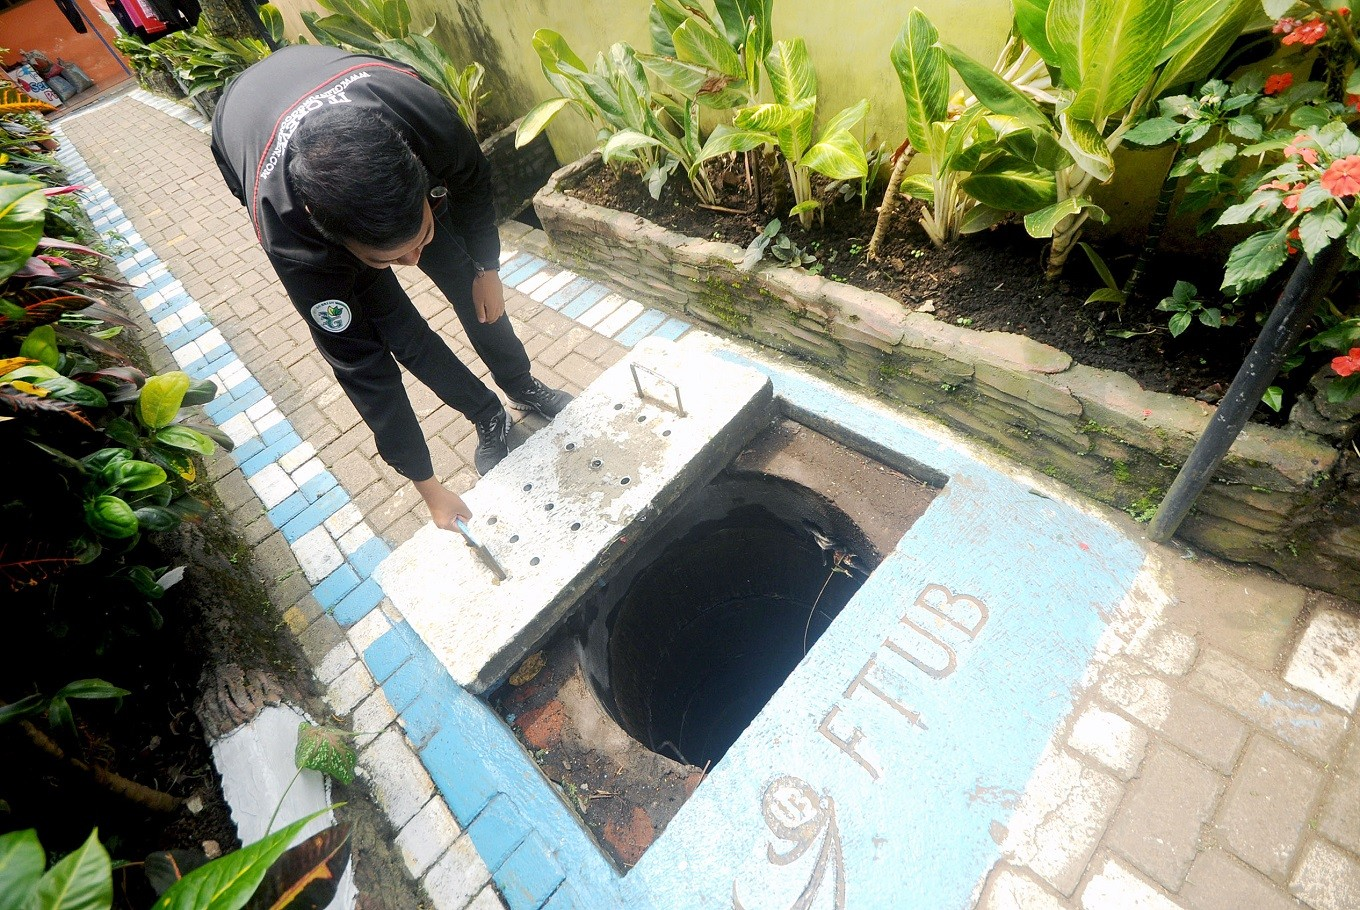 Glintung, saving rainwater and preventing floods